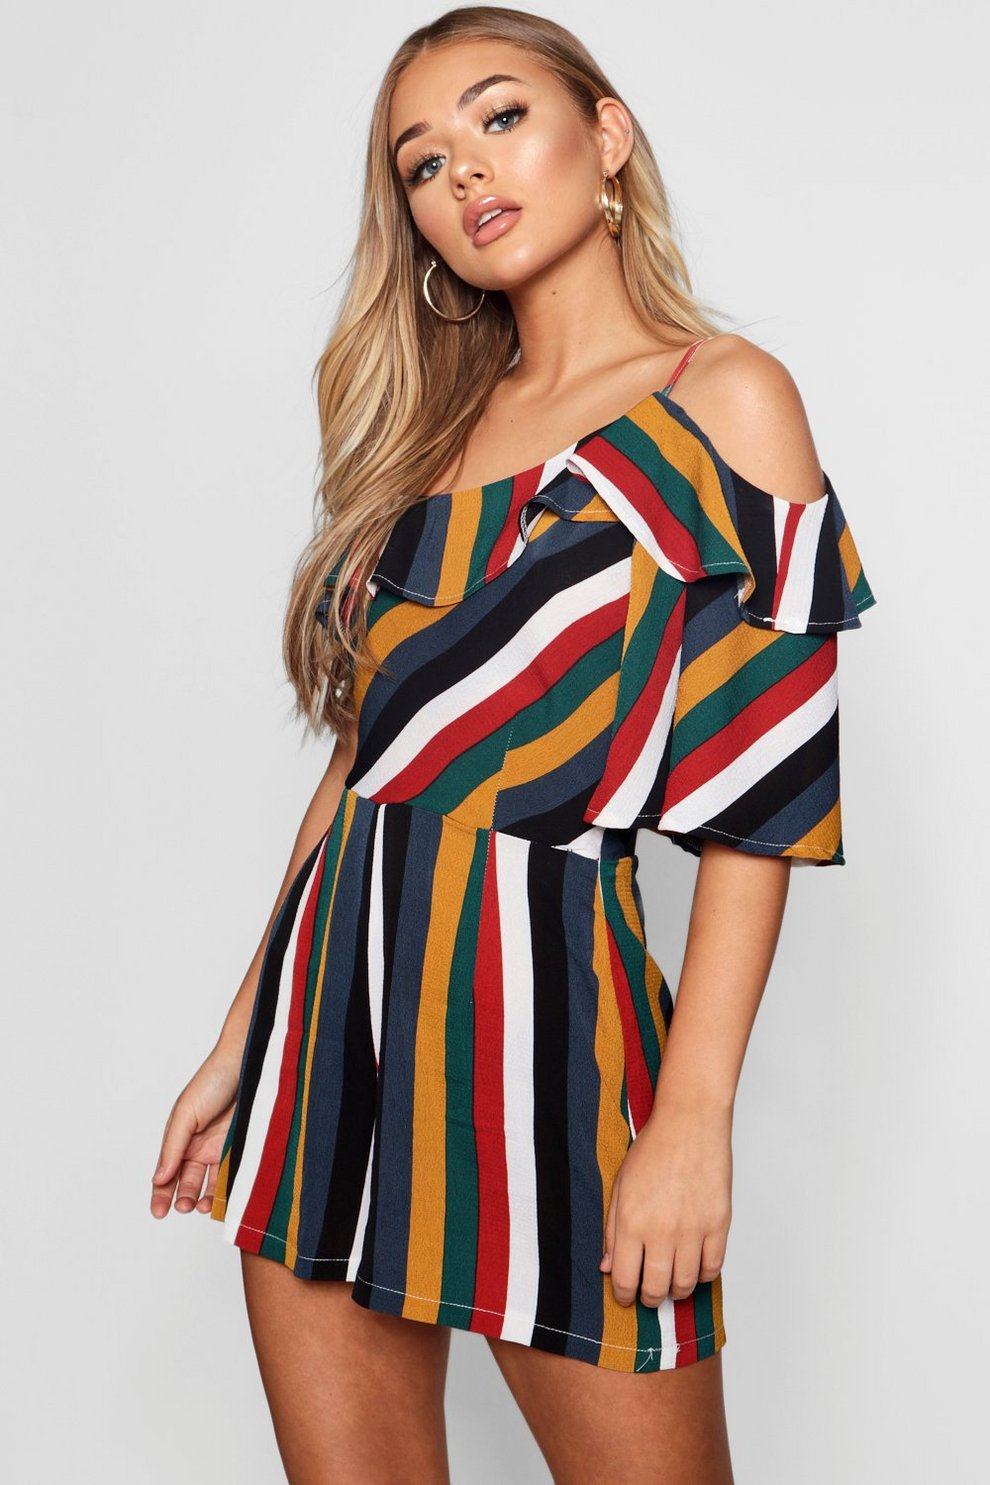 Boohoo Bold Stripe Ruffle Playsuit Clearance Visit Cheap Footaction Factory Price A1PdRI6M